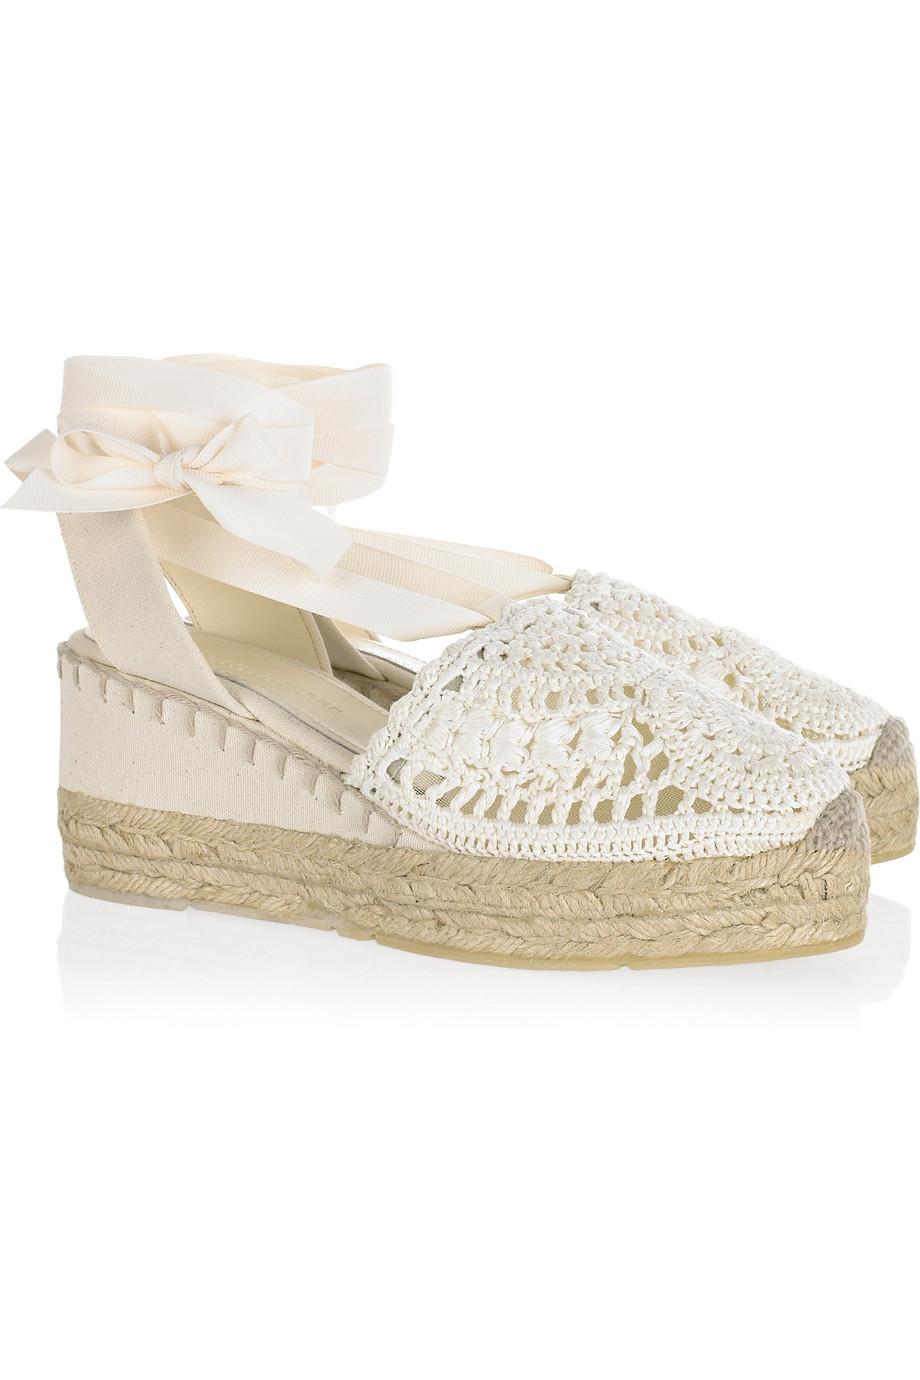 Lyst Ralph Lauren Collection Umika Crocheted Espadrille